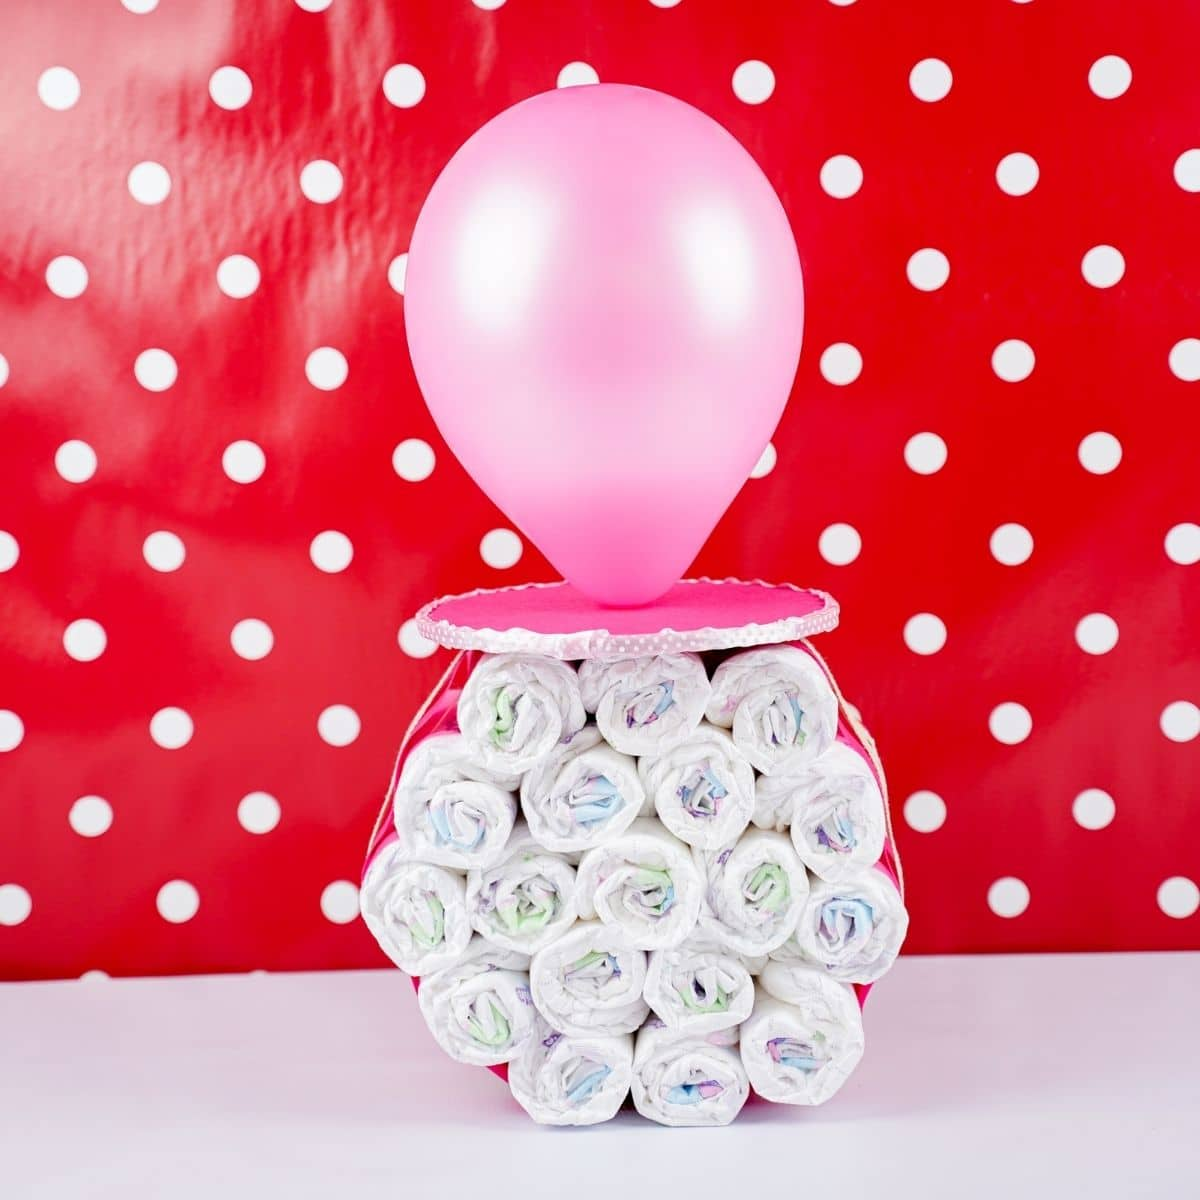 Pacifier diaper cake standing up in front of red polka dot wall